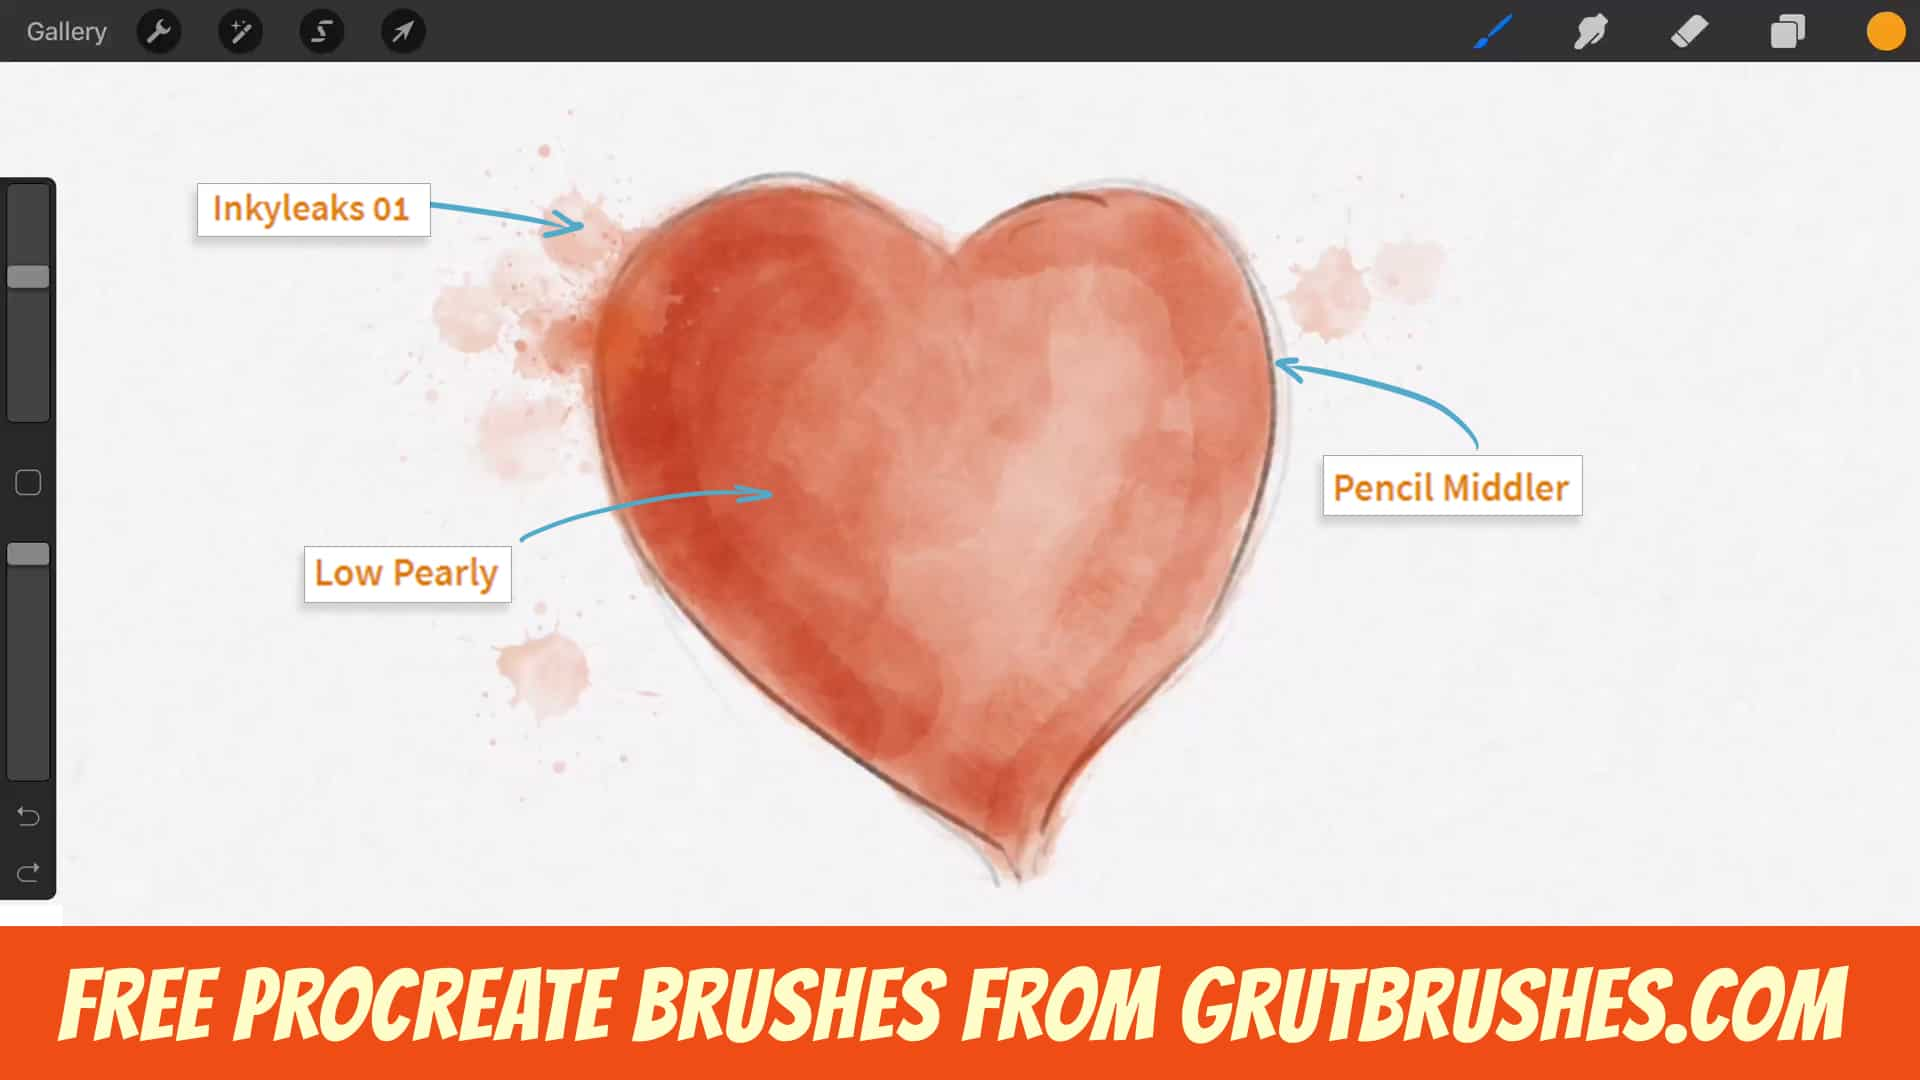 download free Procreate brushes from GrutBrushes